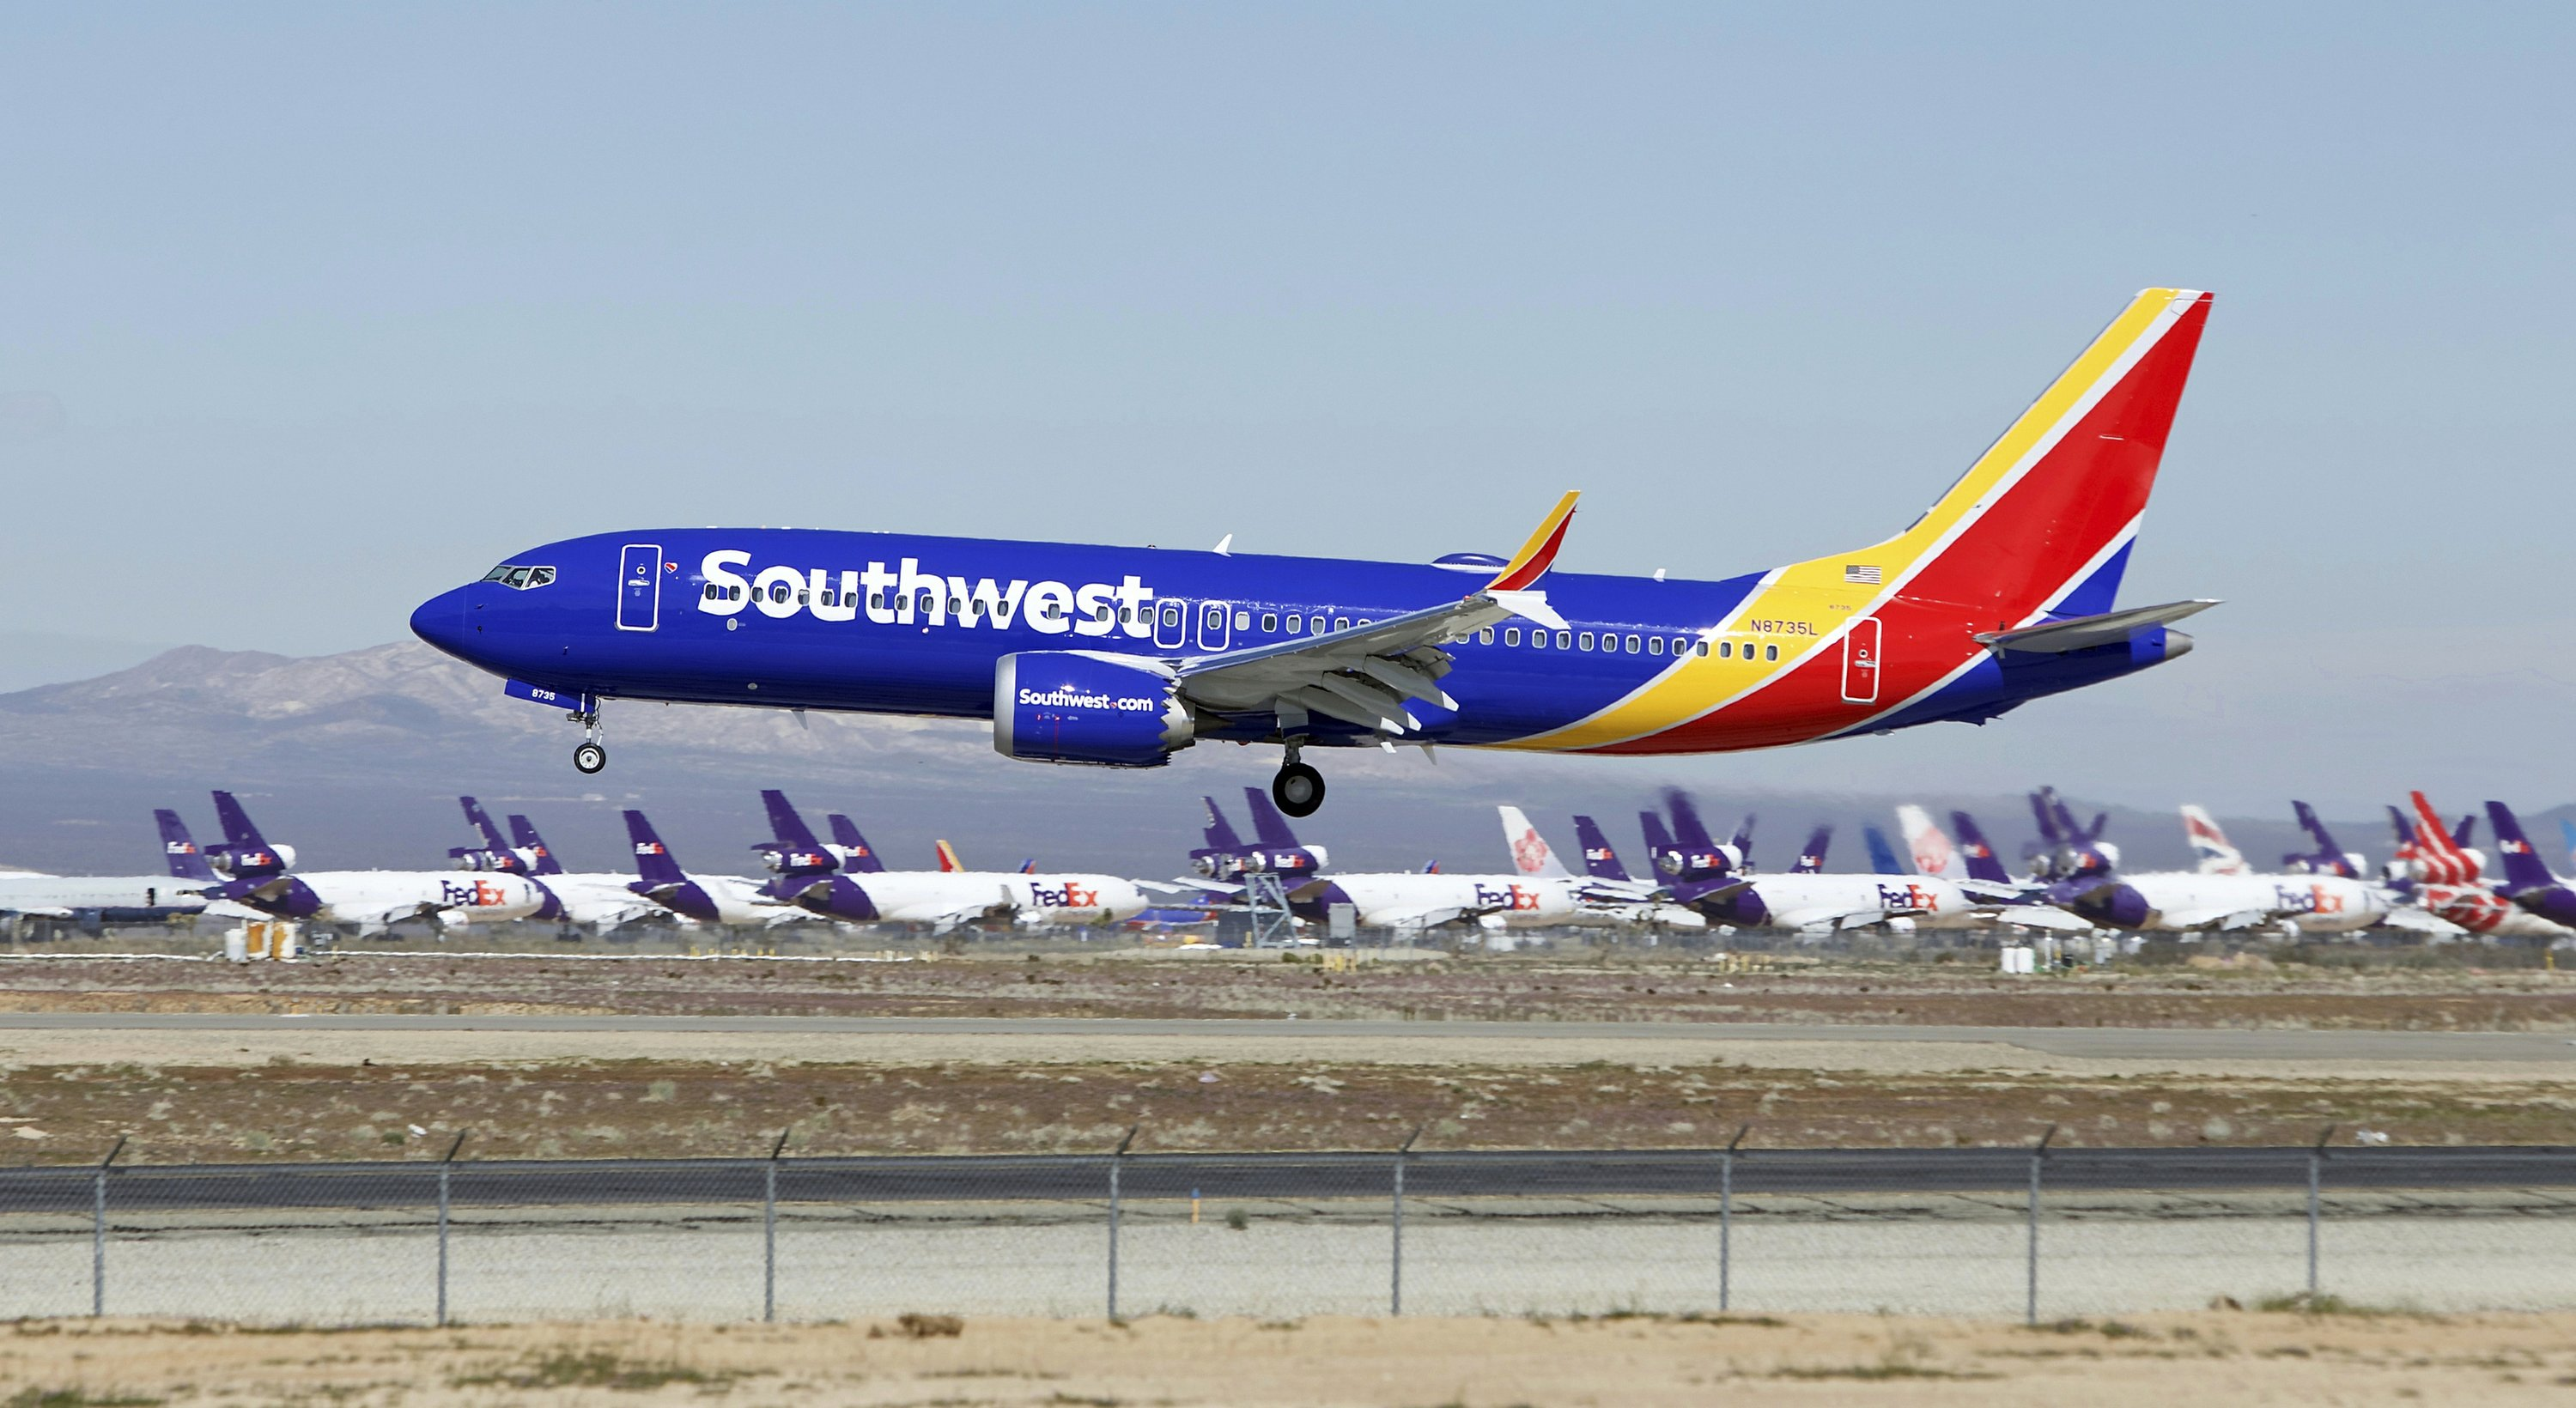 Leader of pilots' union blasts Boeing over grounded plane